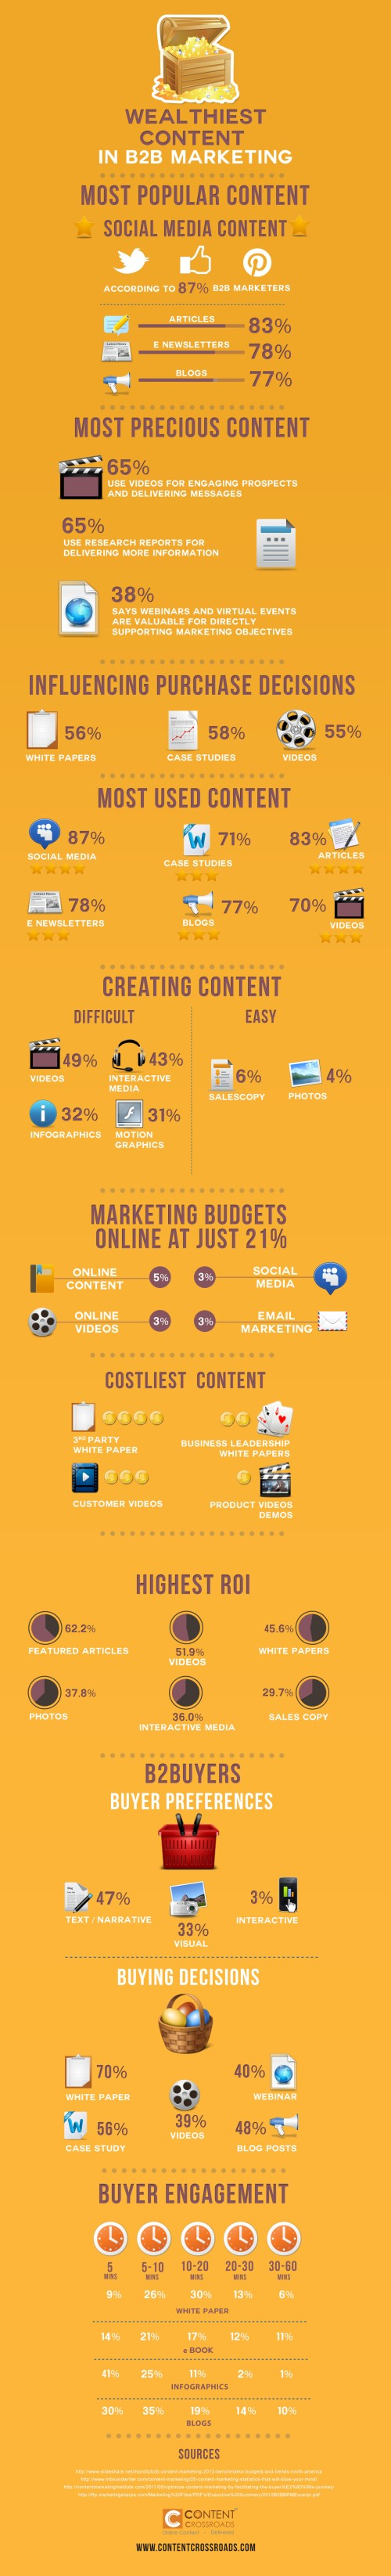 the-wealthiest-content-in-b2b-marketing_51b9afb25957b